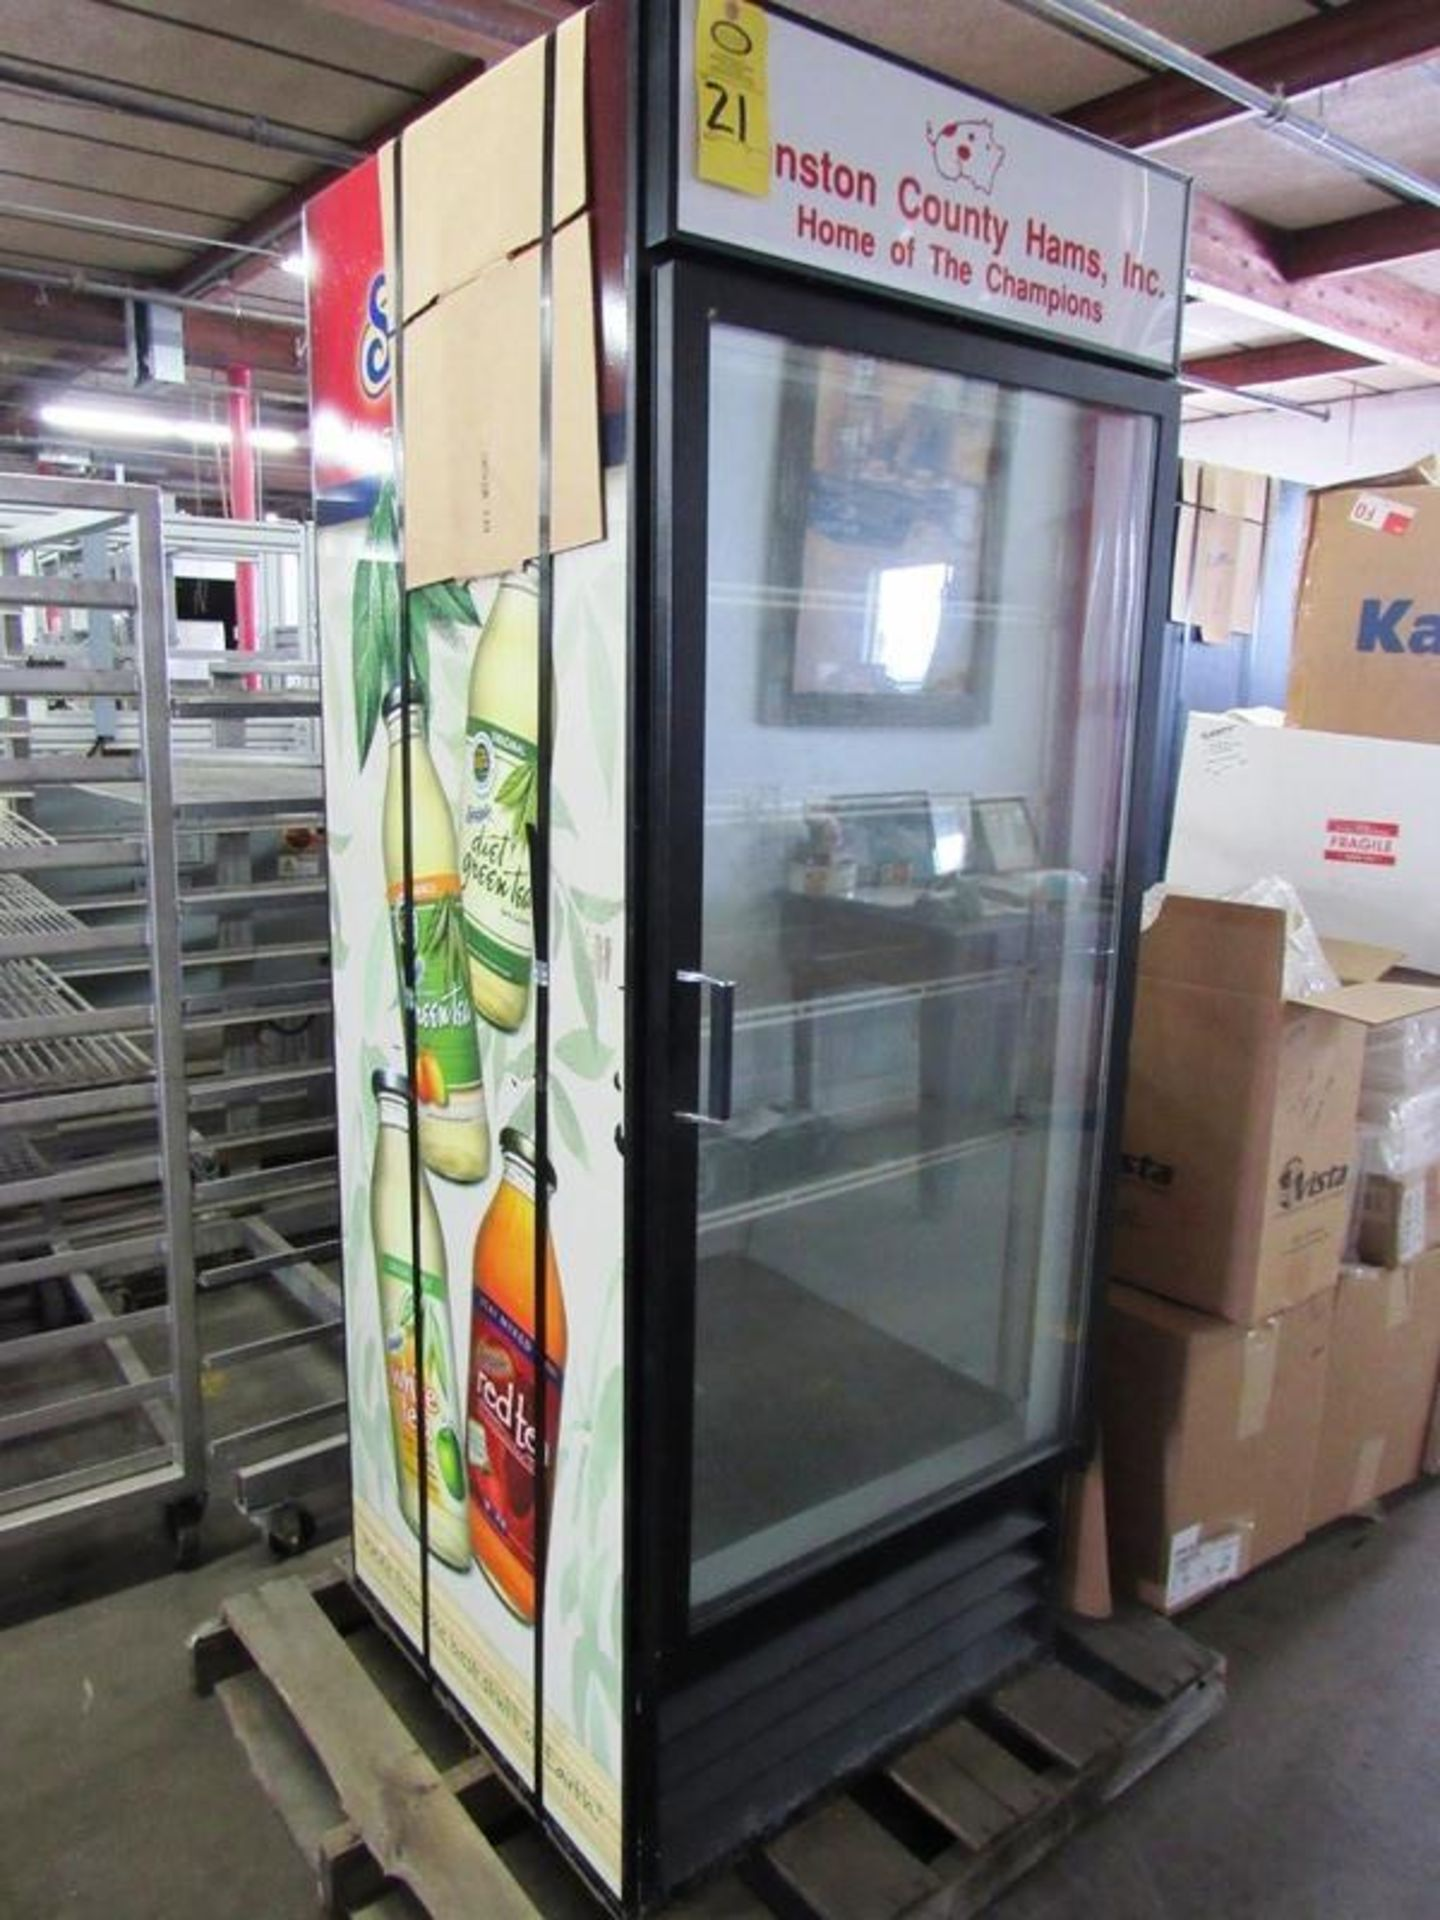 Beverage Air Mdl. MT-27 Refrigerator and/or Freezer, 4 shelves, single door, 27 cu. ft., 30 W X